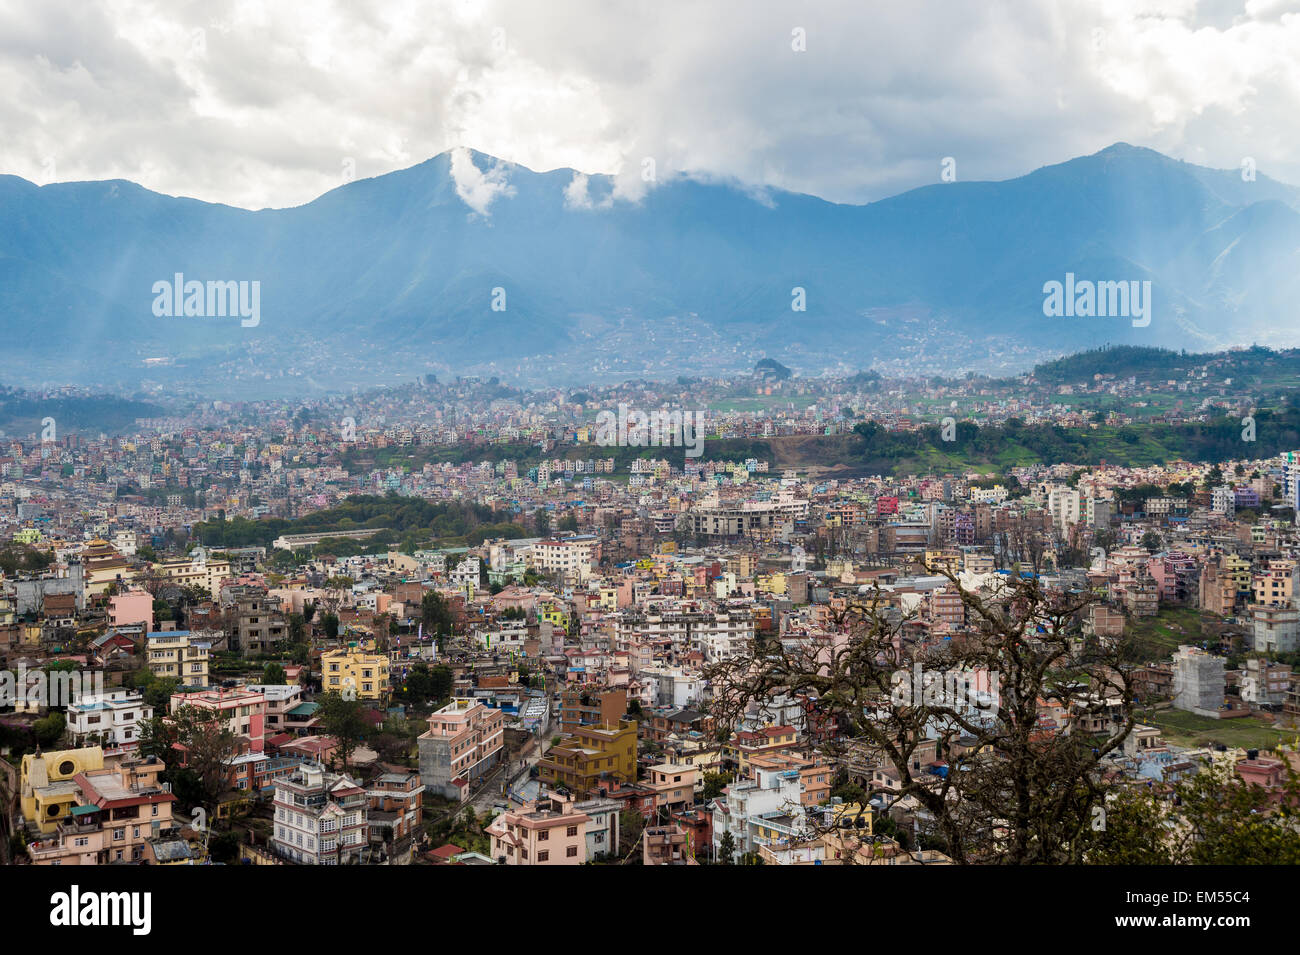 View of Kathmandu Valley with mountains in the background - Stock Image